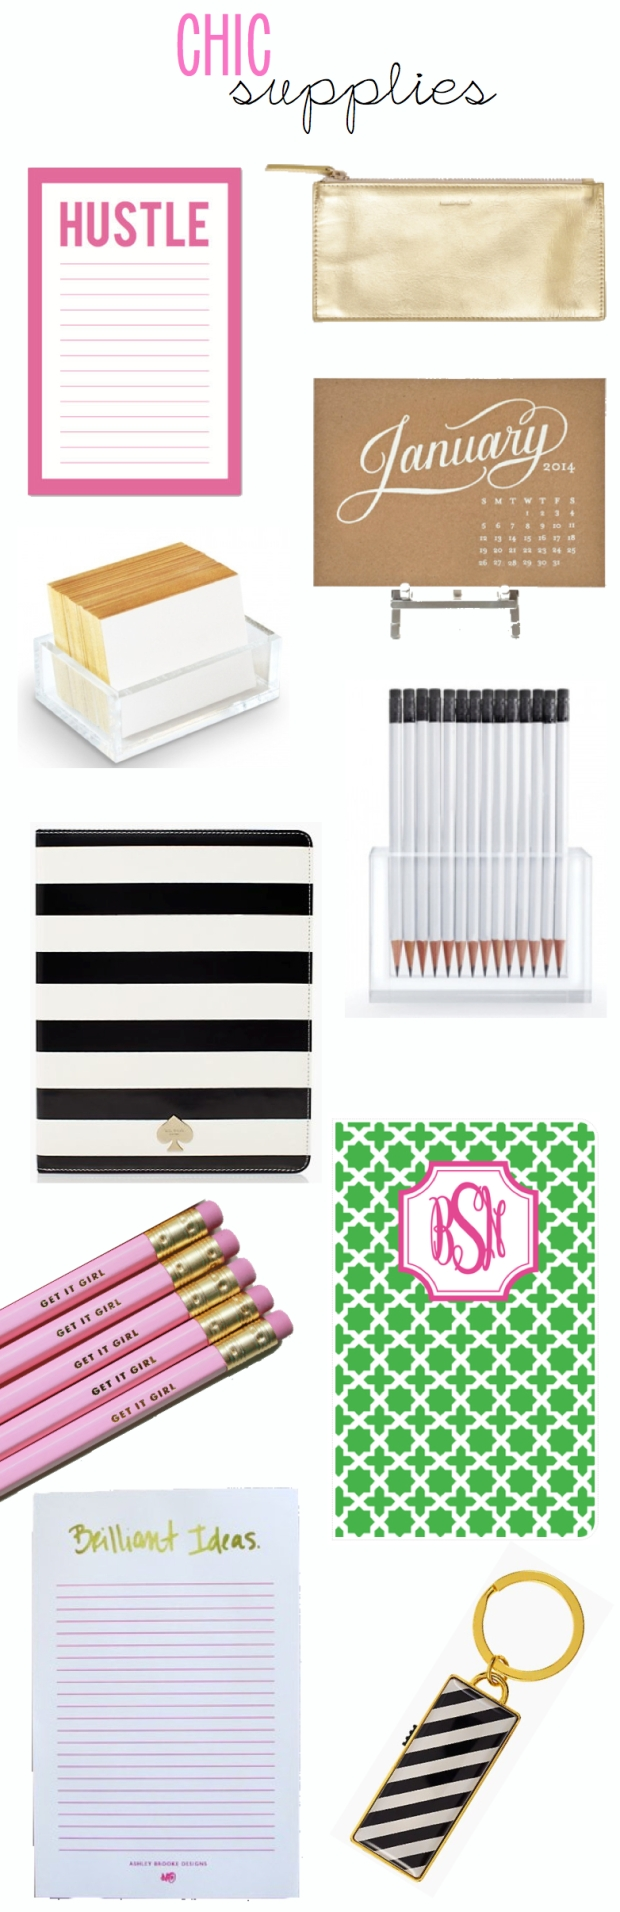 chic supplies - TheSubtleStatement.com